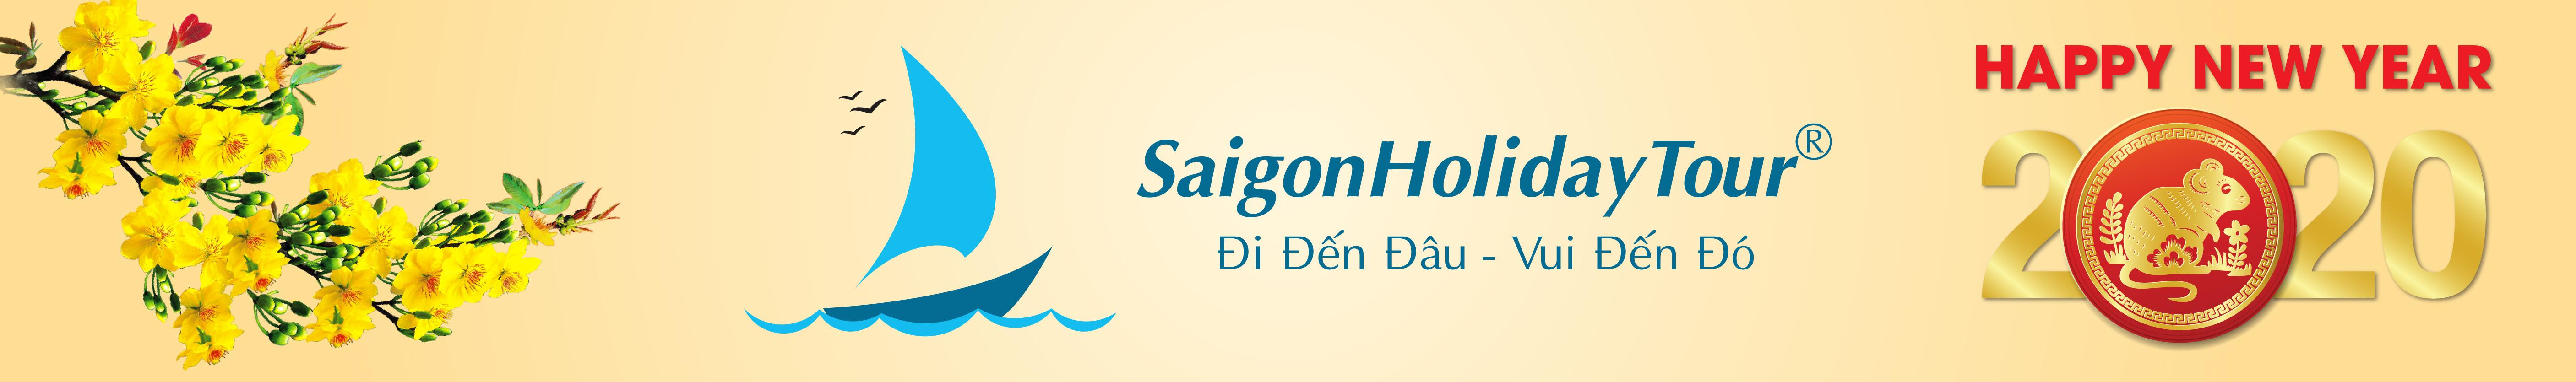 Cty CP DL Sài Gòn Holiday ( Saigon Holiday Tour)